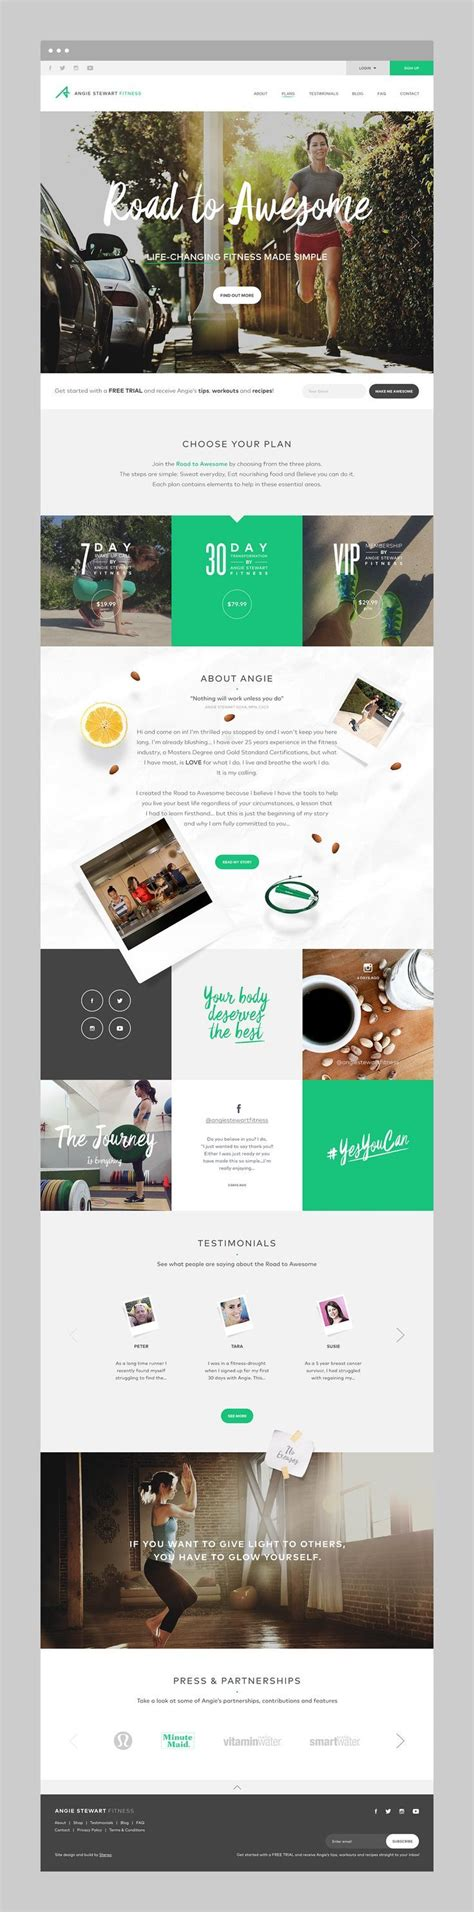 layout web ideas best 25 newsletter design ideas on pinterest newsletter